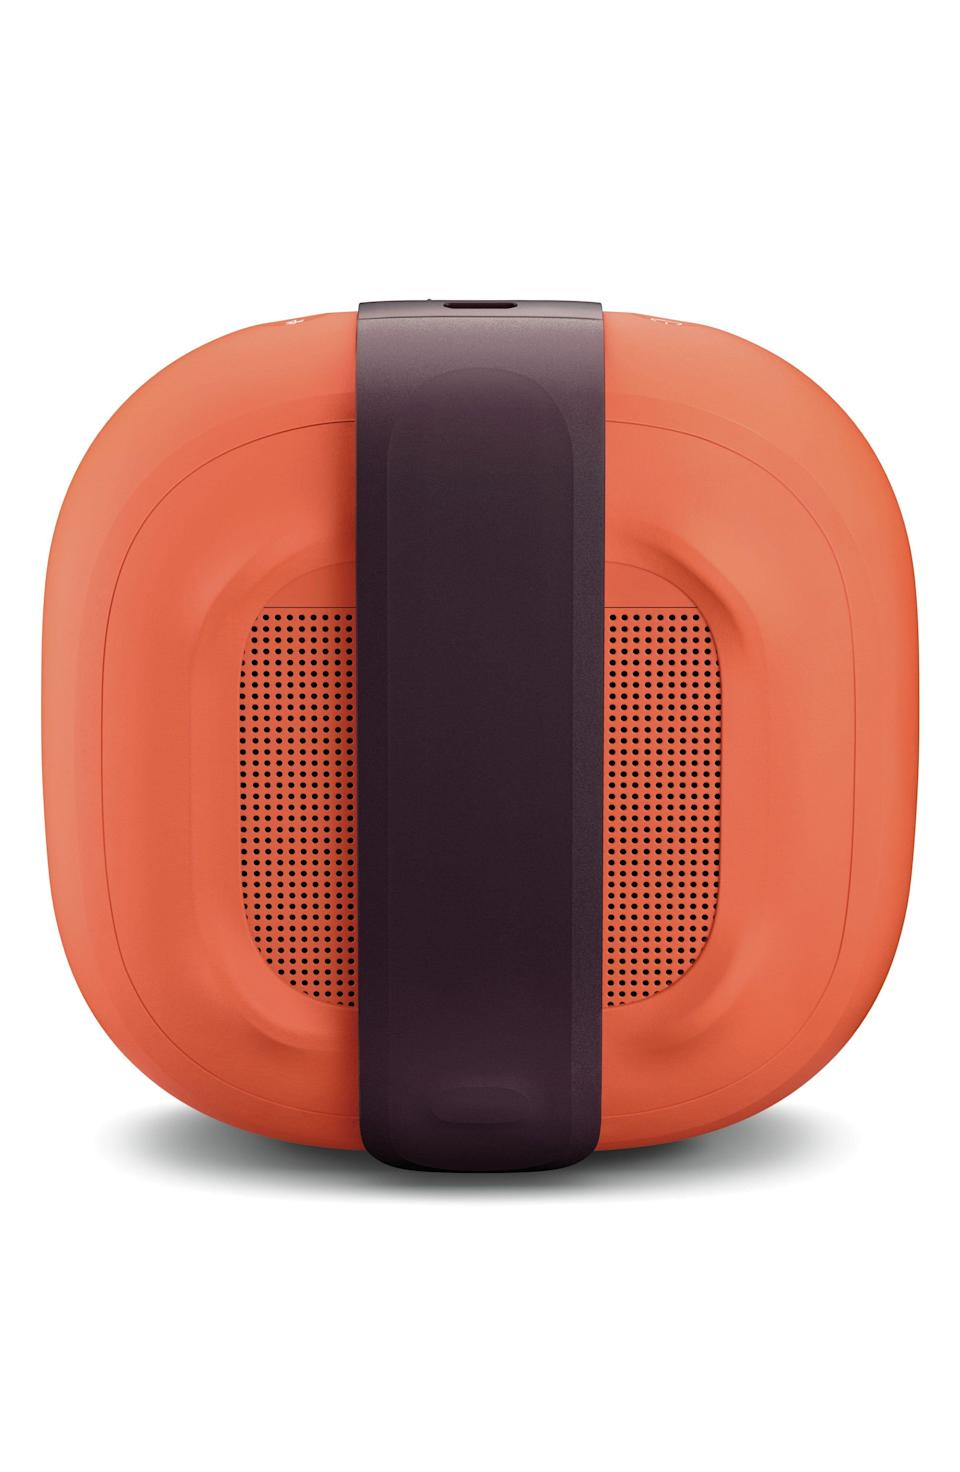 """<p><strong>BOSE\u003CSUP\u003E\u003C\u002FSUP\u003E</strong></p><p>nordstrom.com</p><p><strong>$99.00</strong></p><p><a href=""""https://go.redirectingat.com?id=74968X1596630&url=https%3A%2F%2Fwww.nordstrom.com%2Fs%2Fbose-soundlink-micro-bluetooth-speaker%2F4722057&sref=https%3A%2F%2Fwww.womansday.com%2Frelationships%2Fg3242%2Fgifts-for-couples%2F"""" rel=""""nofollow noopener"""" target=""""_blank"""" data-ylk=""""slk:Shop Now"""" class=""""link rapid-noclick-resp"""">Shop Now</a></p><p>For couples that love to entertain, these Bose Bluetooth speakers will supply the tunes. They can use it in their home, or bring it to the beach or pool since they're waterproof and durable.</p>"""